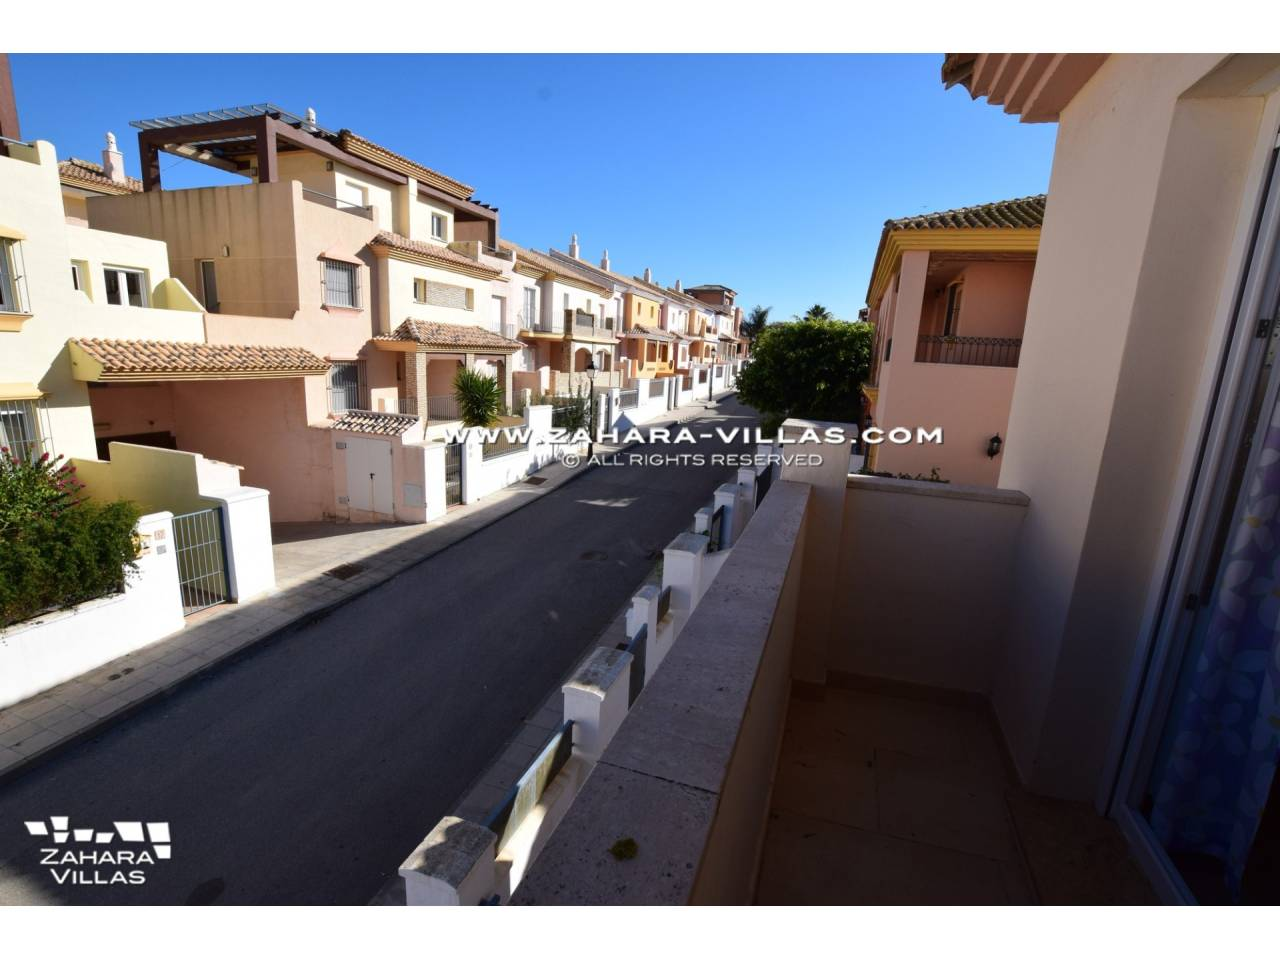 Imagen 20 de Semi-detached house for sale en Zahara de los Atunes